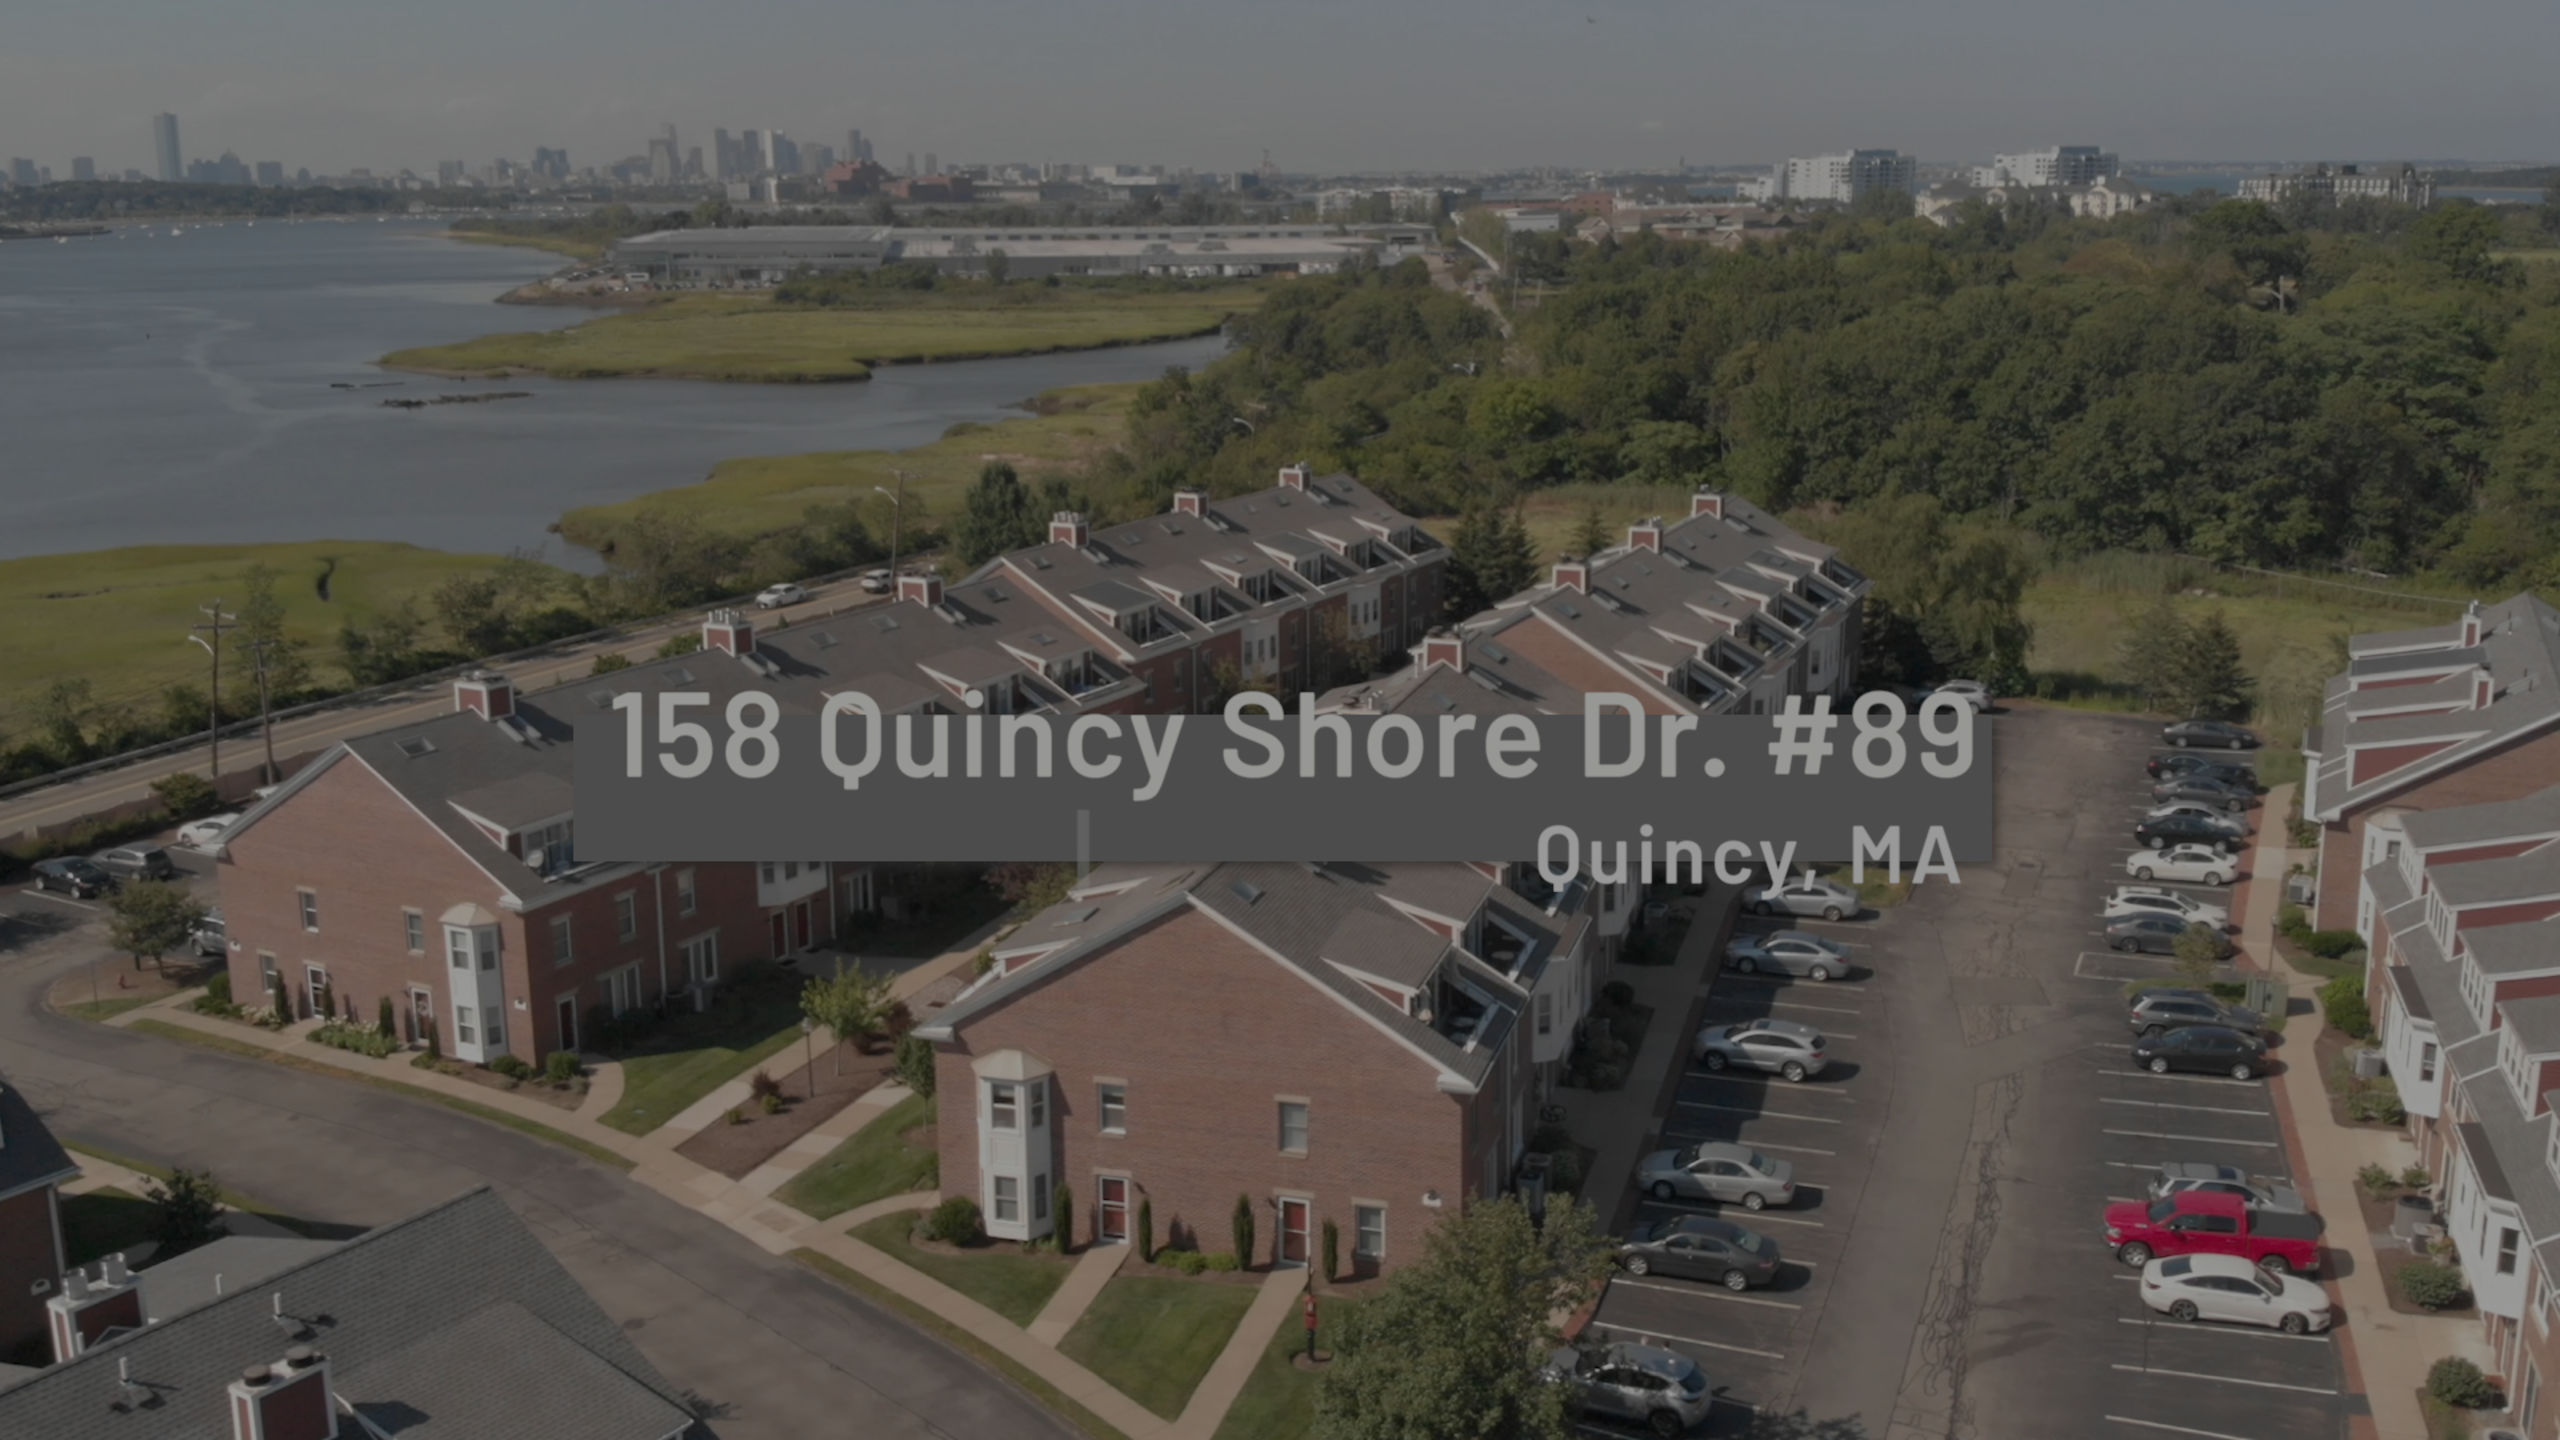 158 Quincy Shore Drive, Quincy, MA